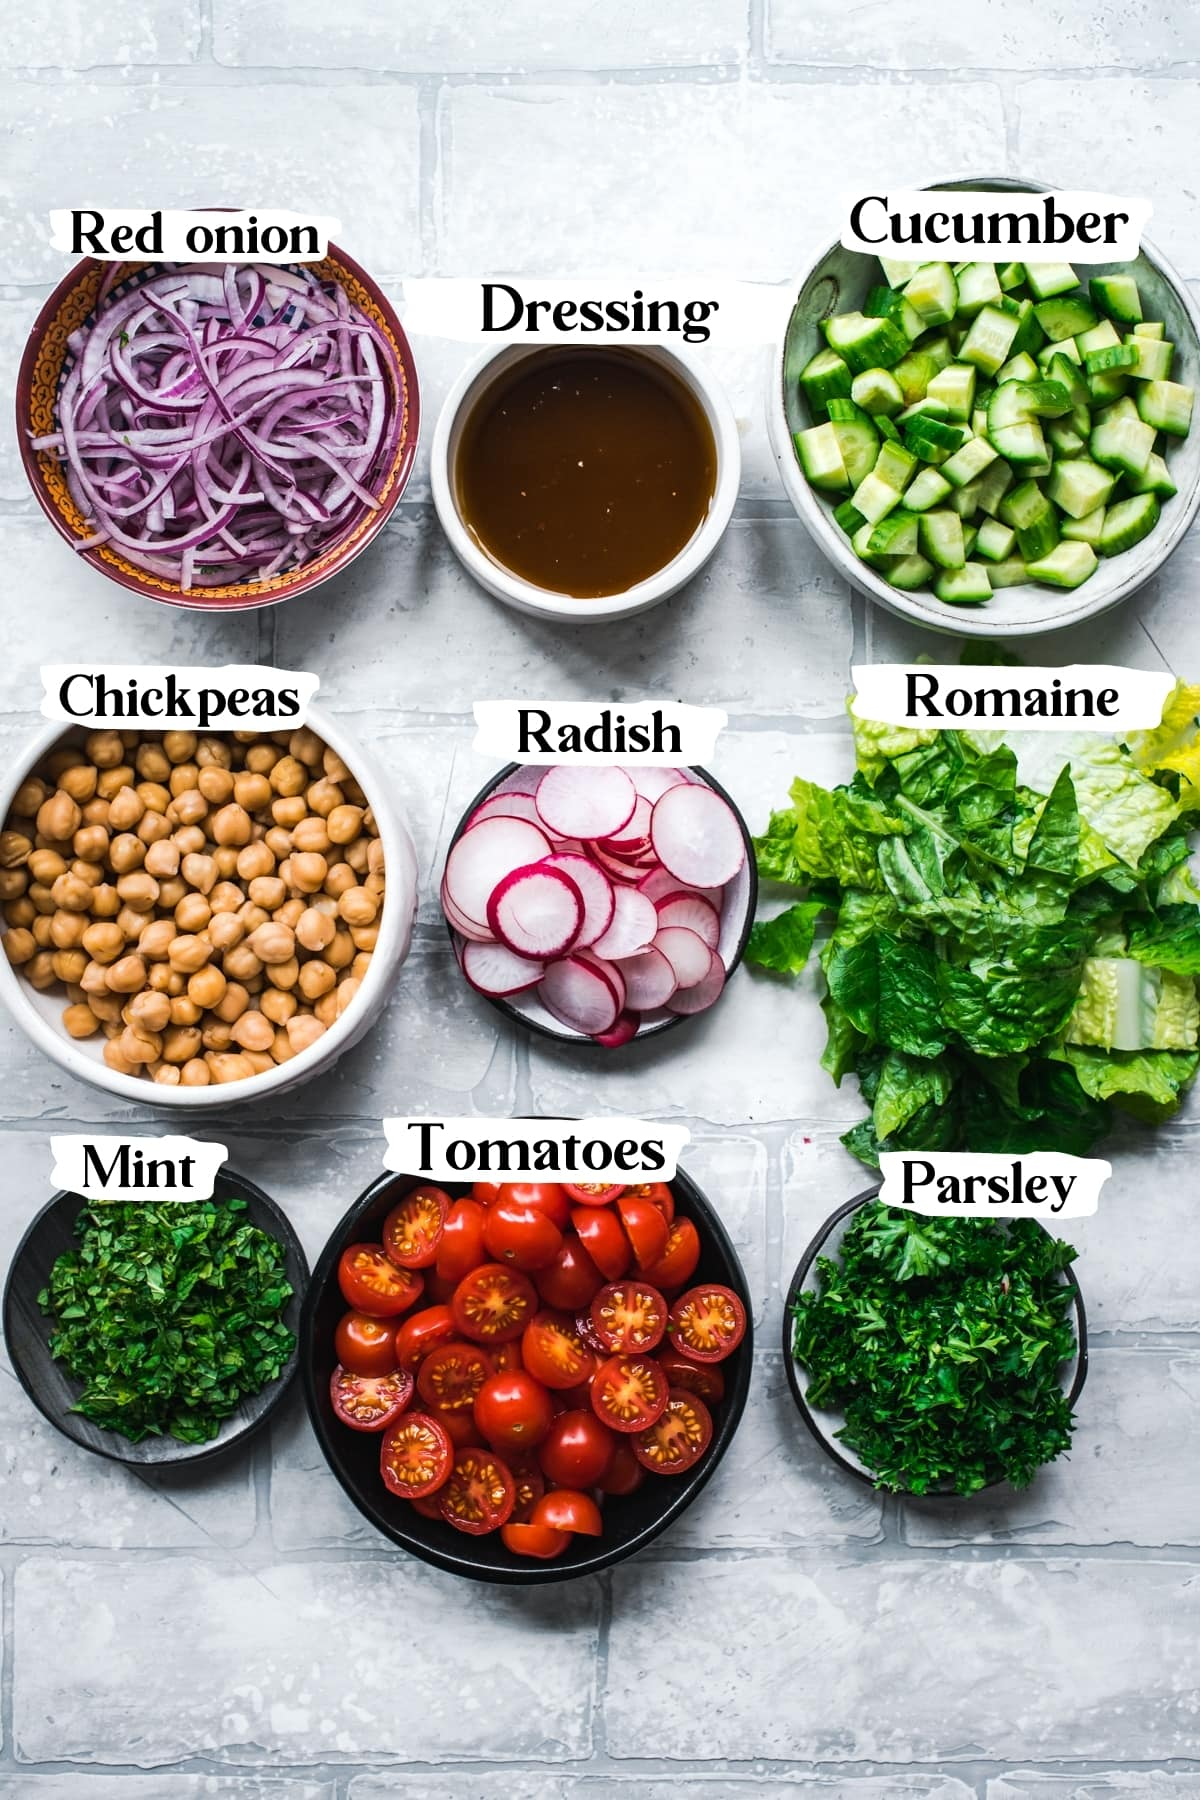 overhead view of ingredients for chickpea fattoush salad in small bowls on tile backdrop.